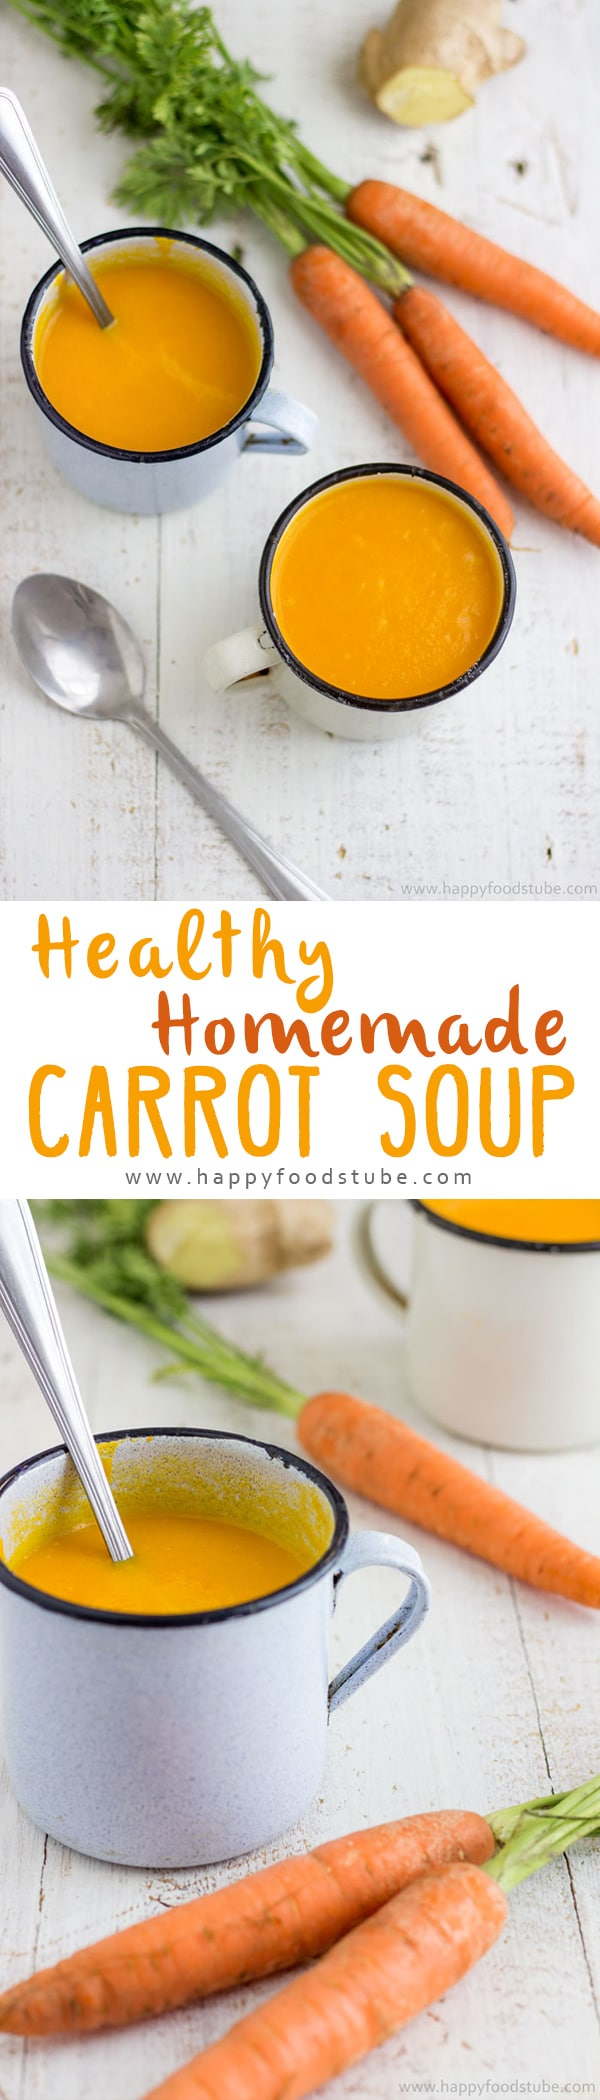 Homemade Healthy Carrot Soup with Ginger. It's creamy, sweet and rich in antioxidants! A perfect soup for Thanksgiving dinner! | happyfoodstube.com